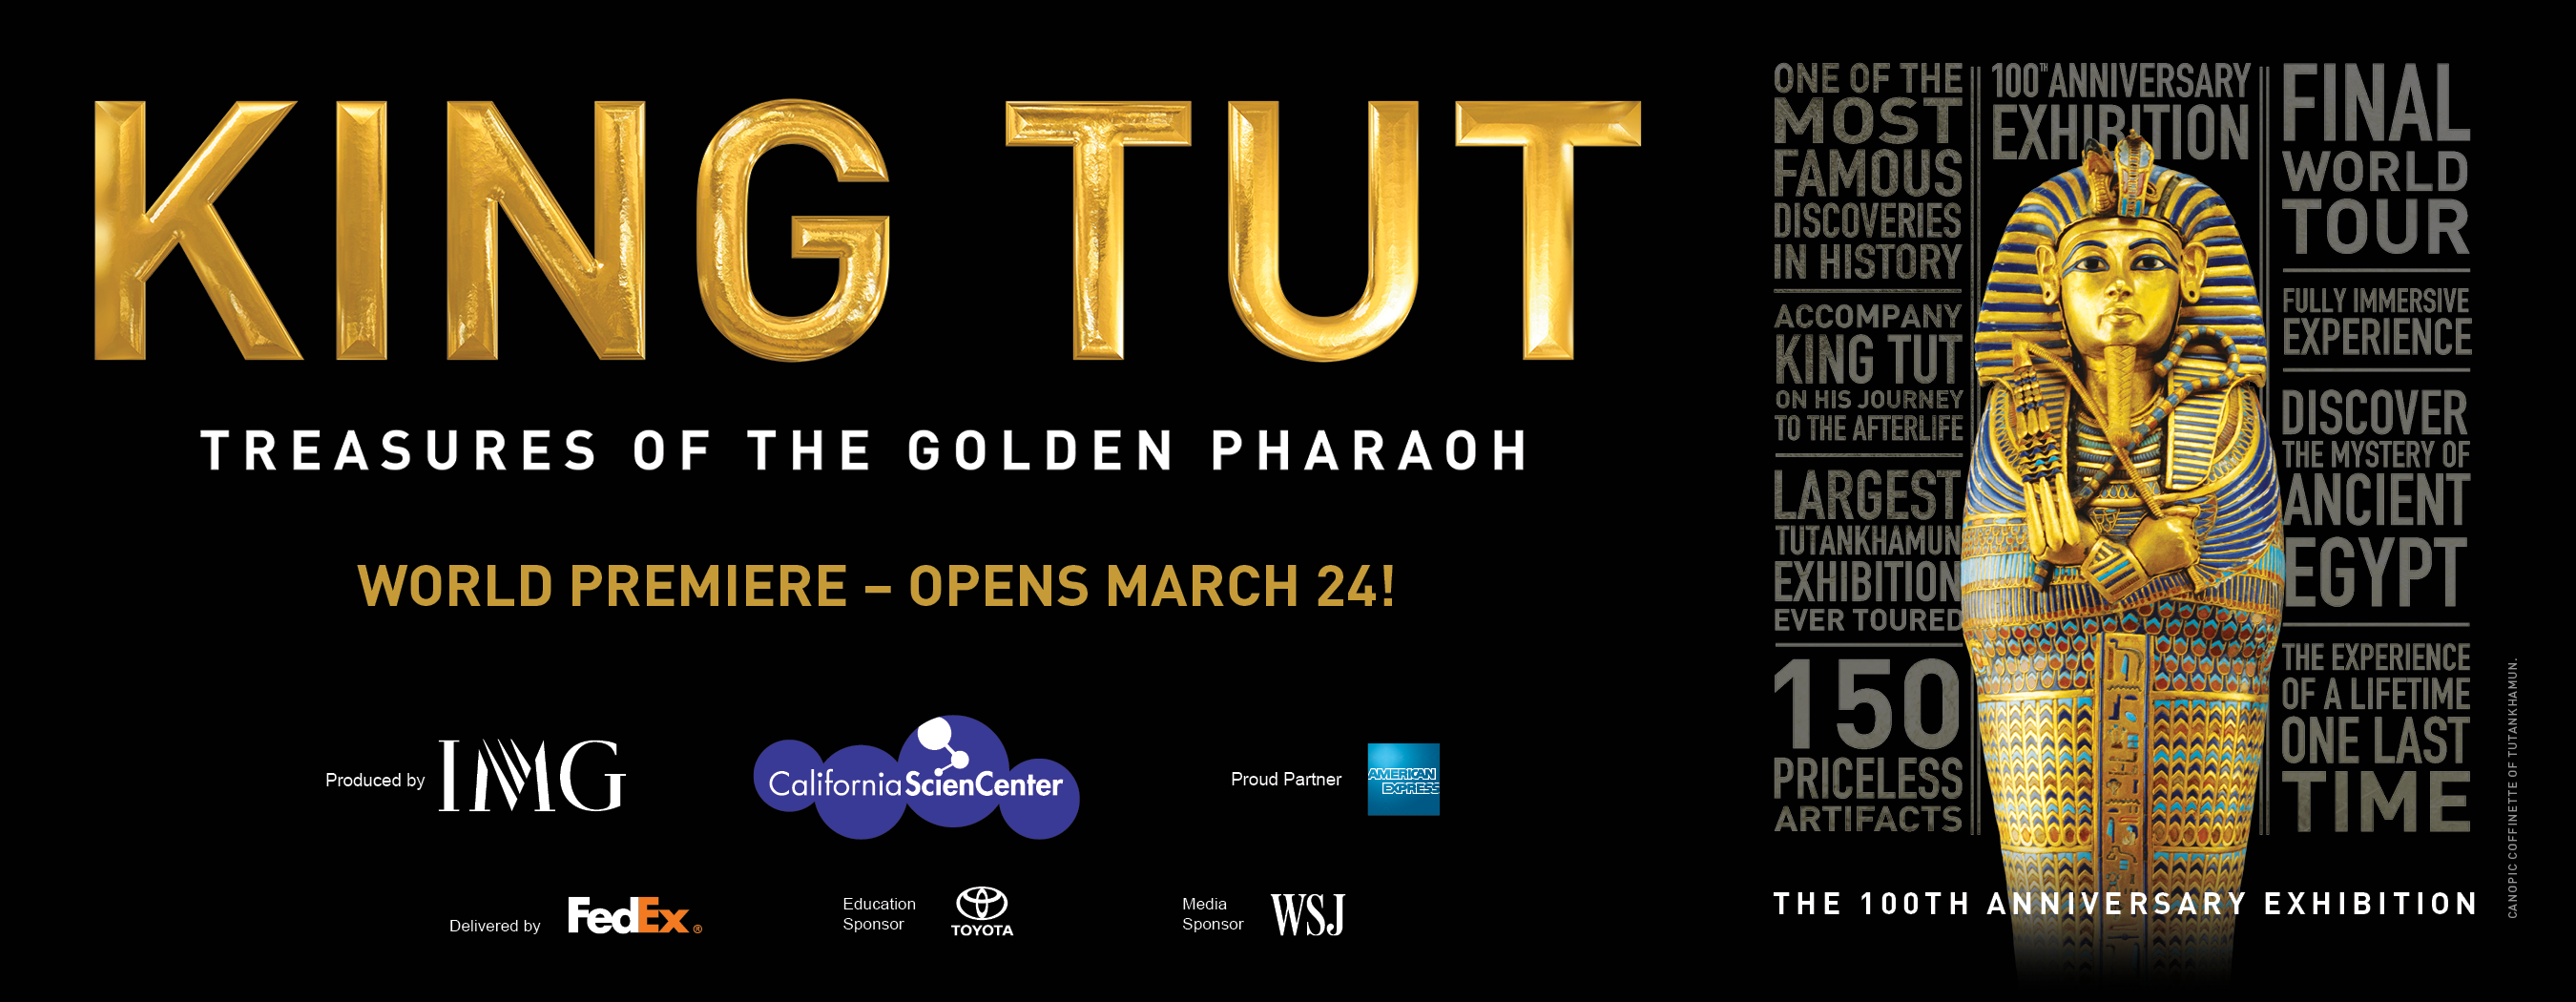 king-tut-premiere-hero-banner